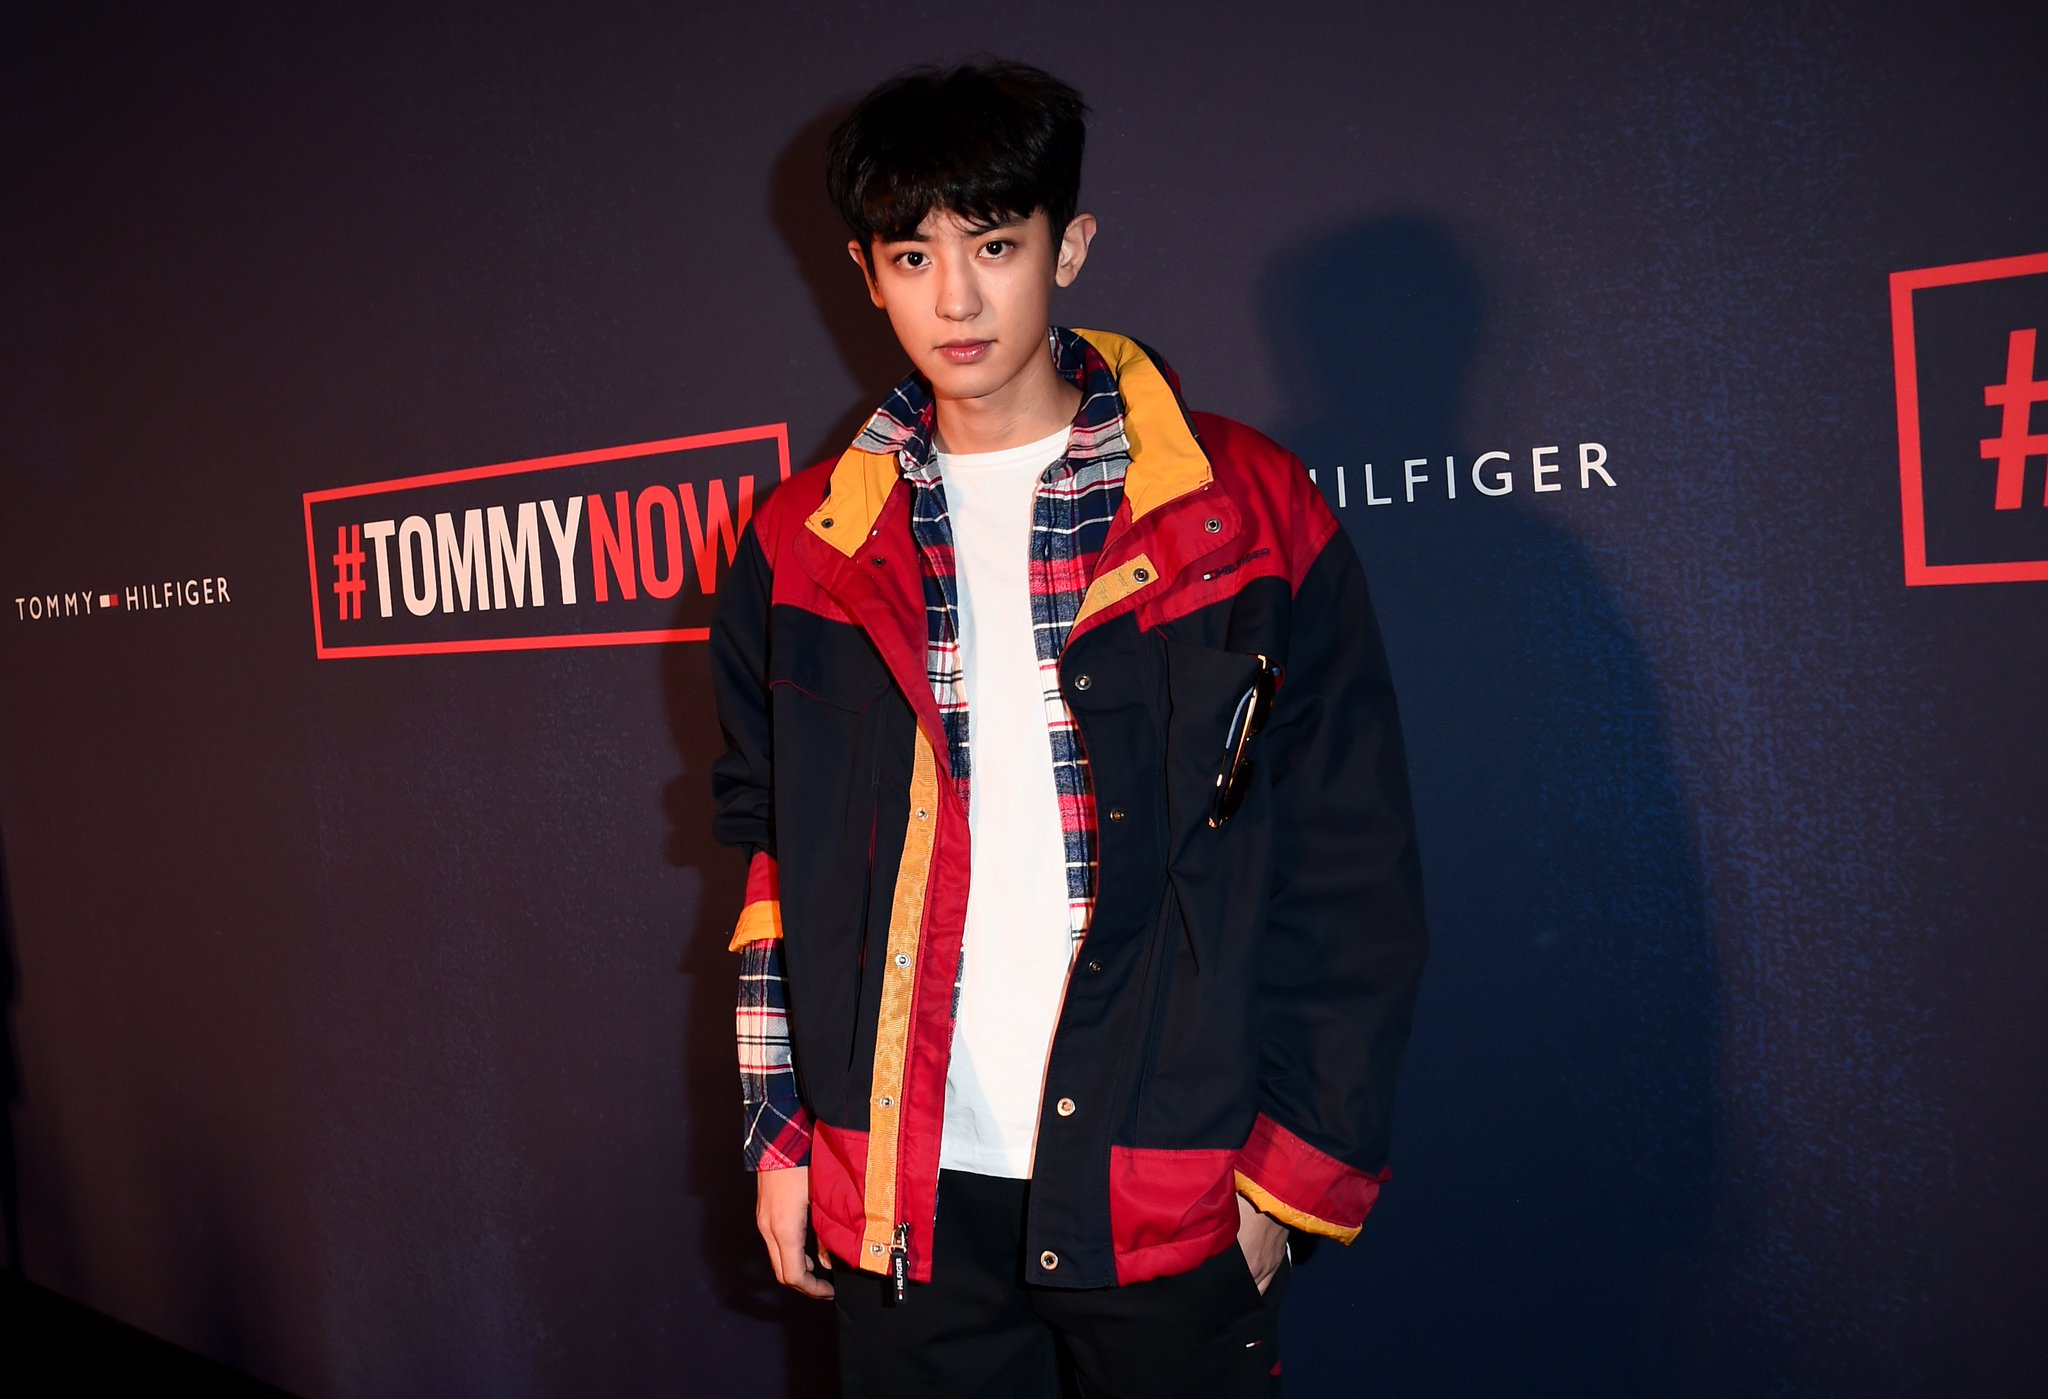 Looking dapper! #CHANYEOL on the red carpet at #TOMMYNOW #LFW https://t.co/IfU6uHn1qN https://t.co/DA1znV3J0j